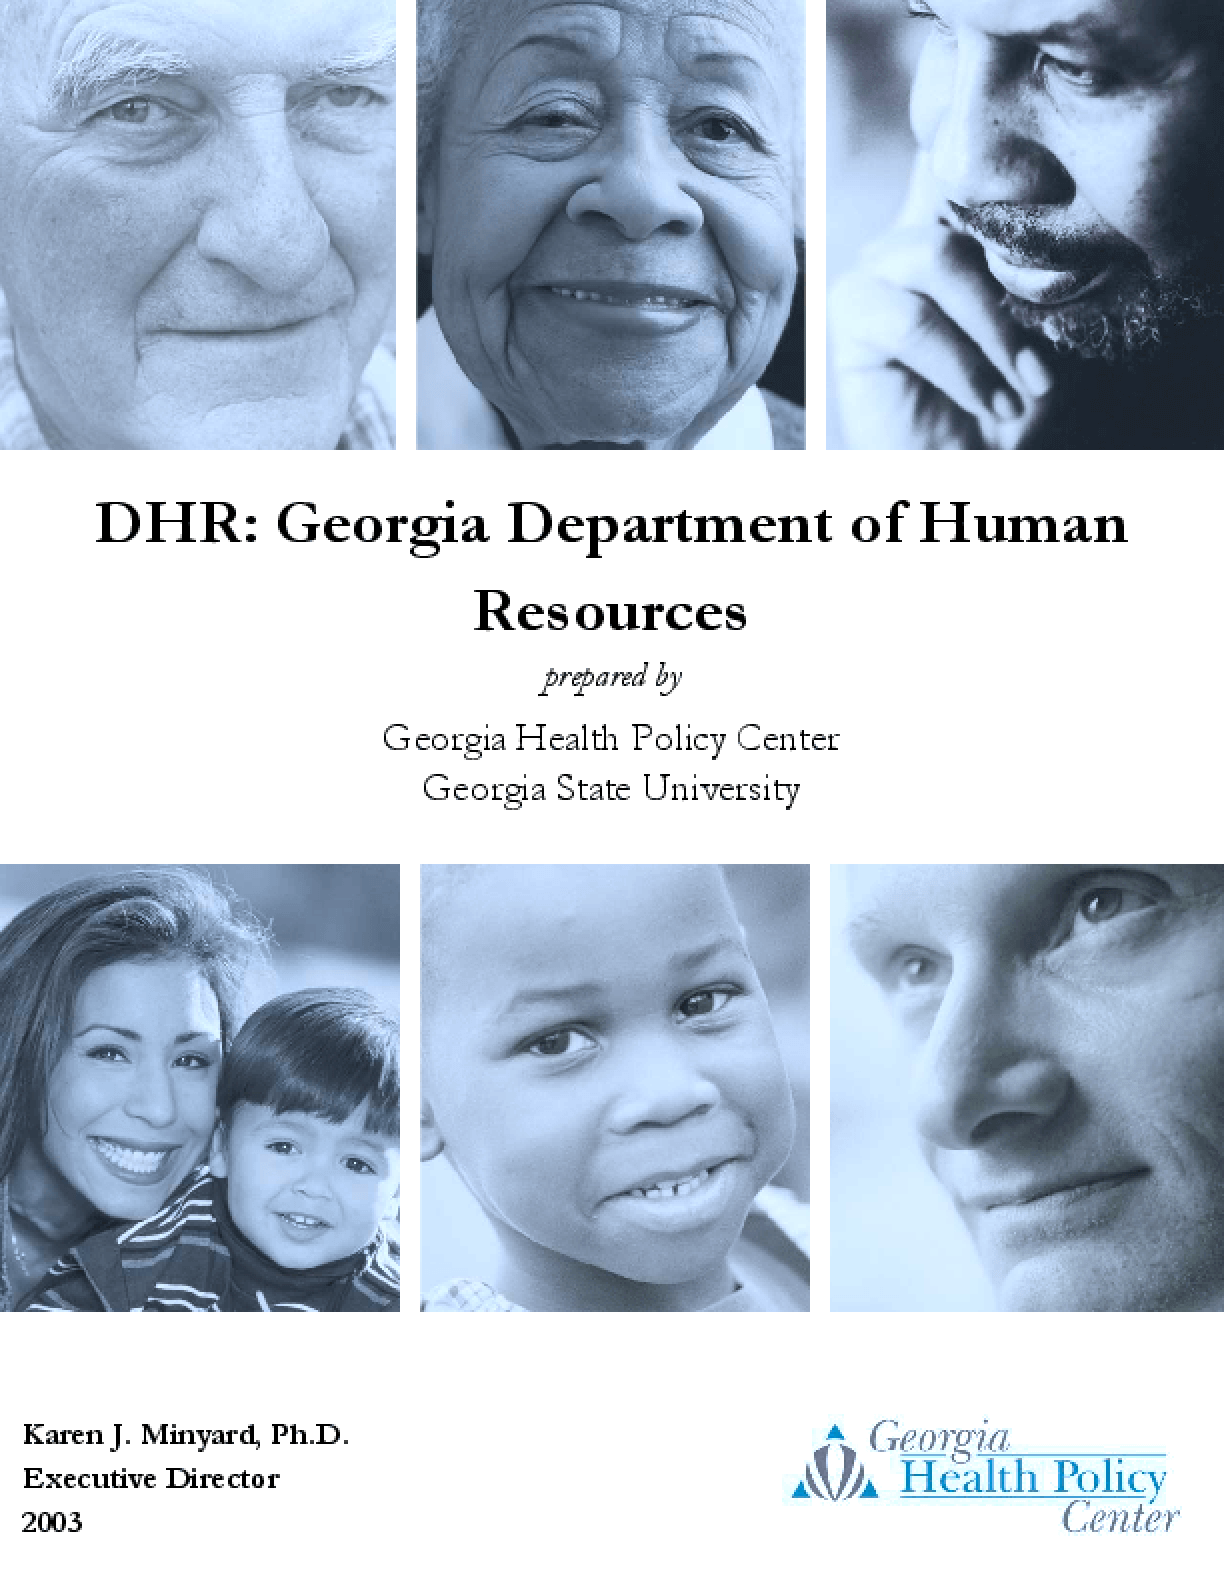 DHR: Georgia Department of Human Resources